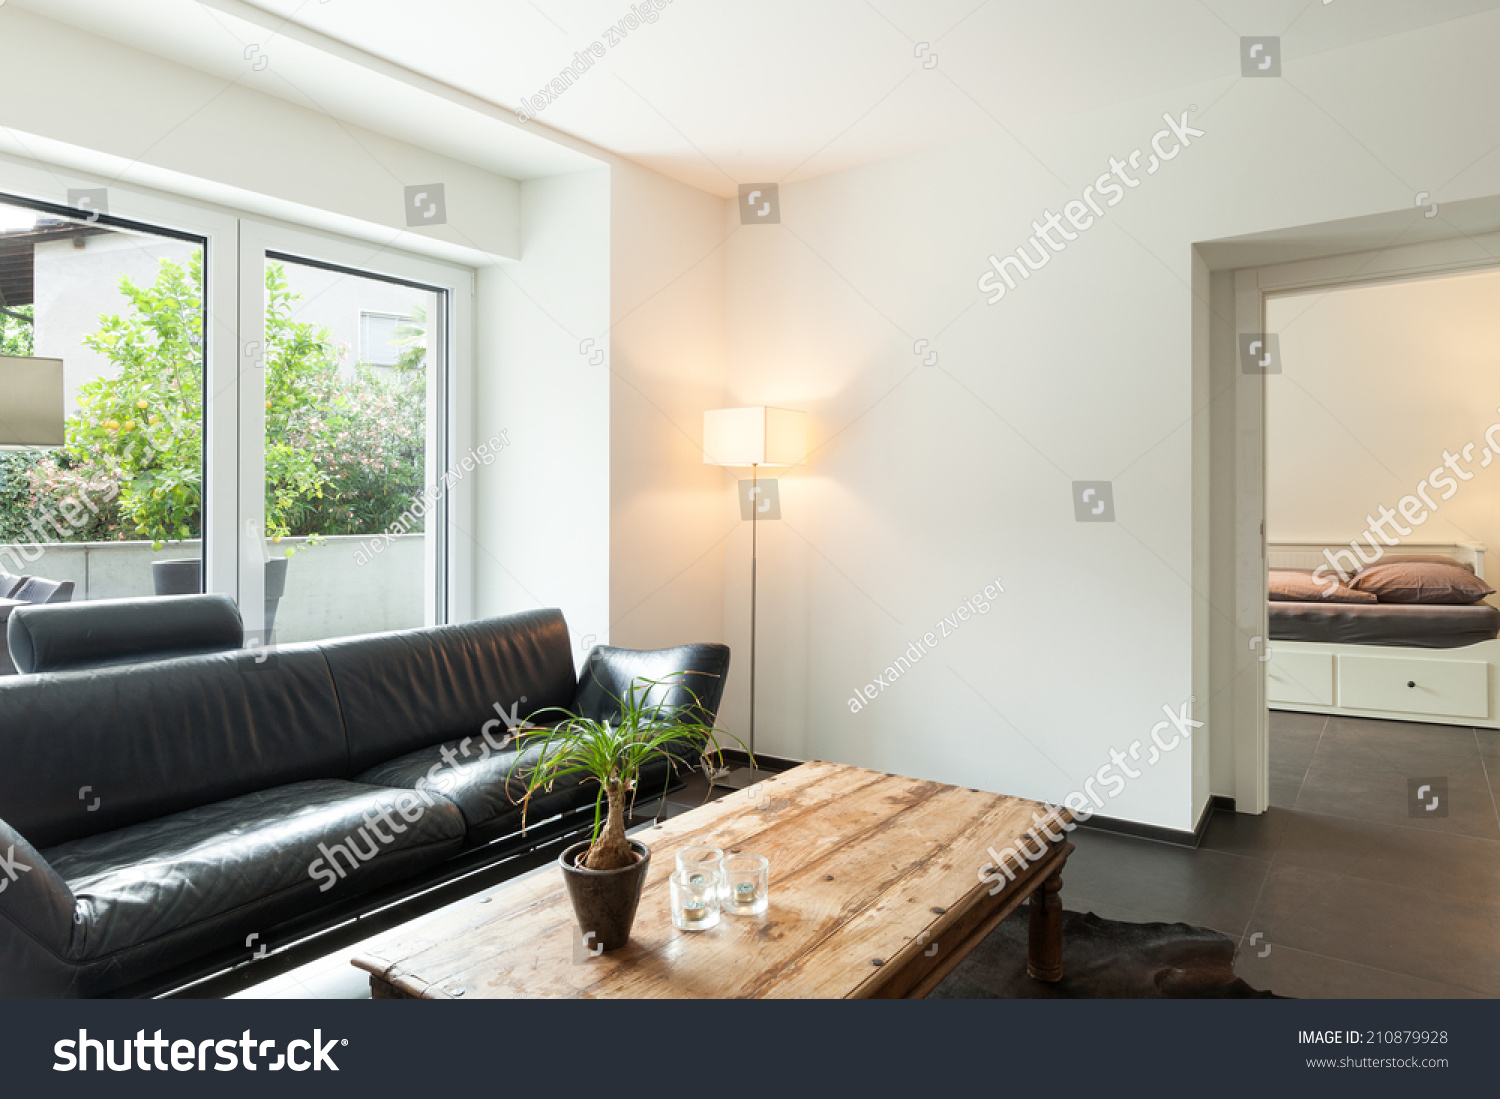 Interior modern house nice living room stock photo Nice house interior